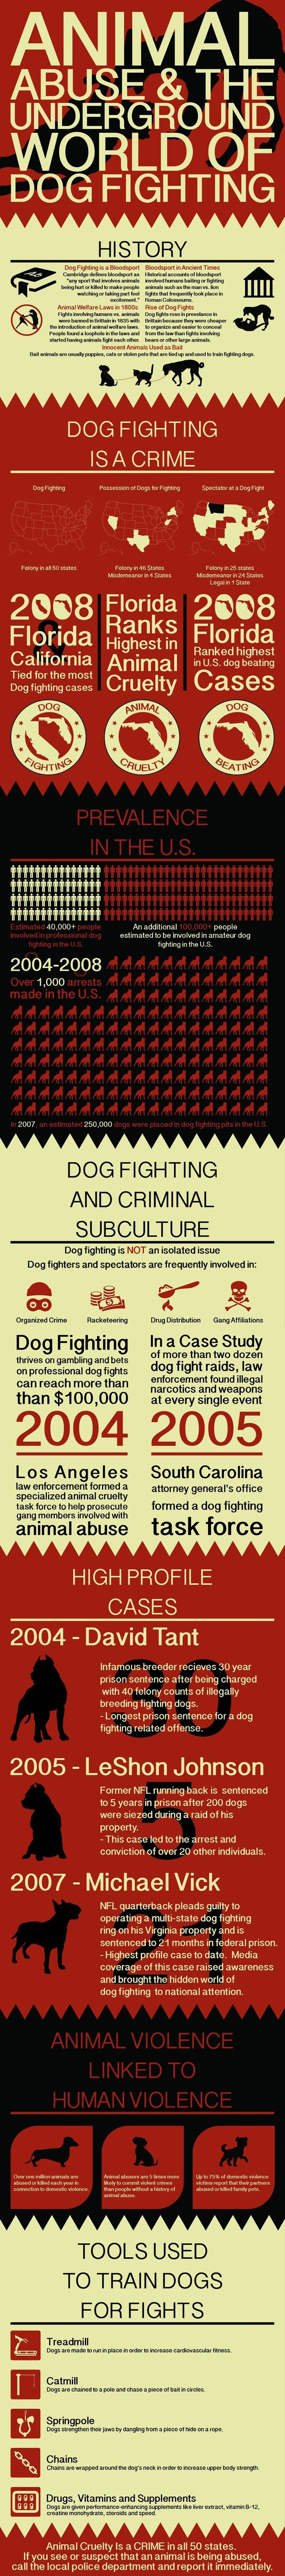 Animal abuse infographic